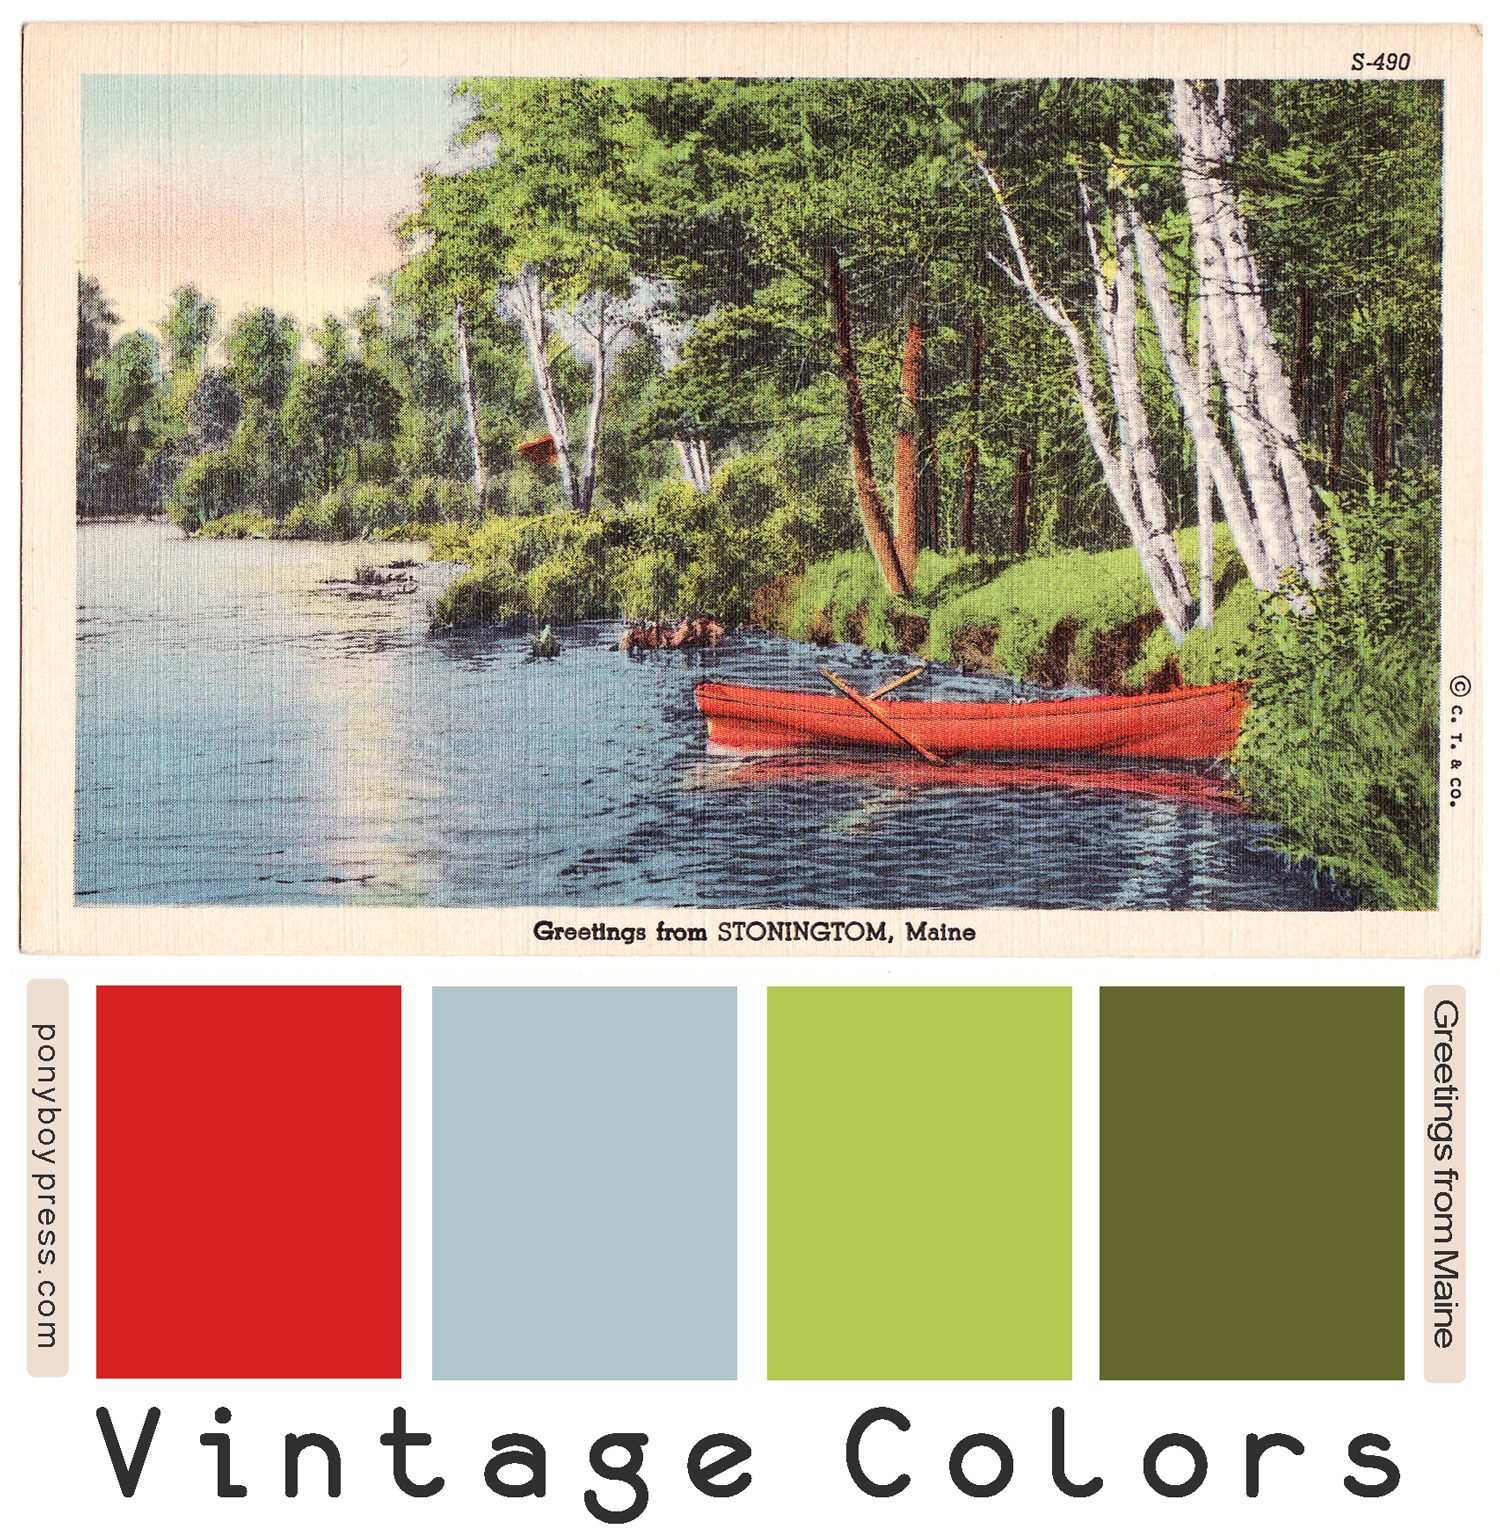 Vintage Color Palettes - Greetings from Maine. Go to the blog for the hex code numbers